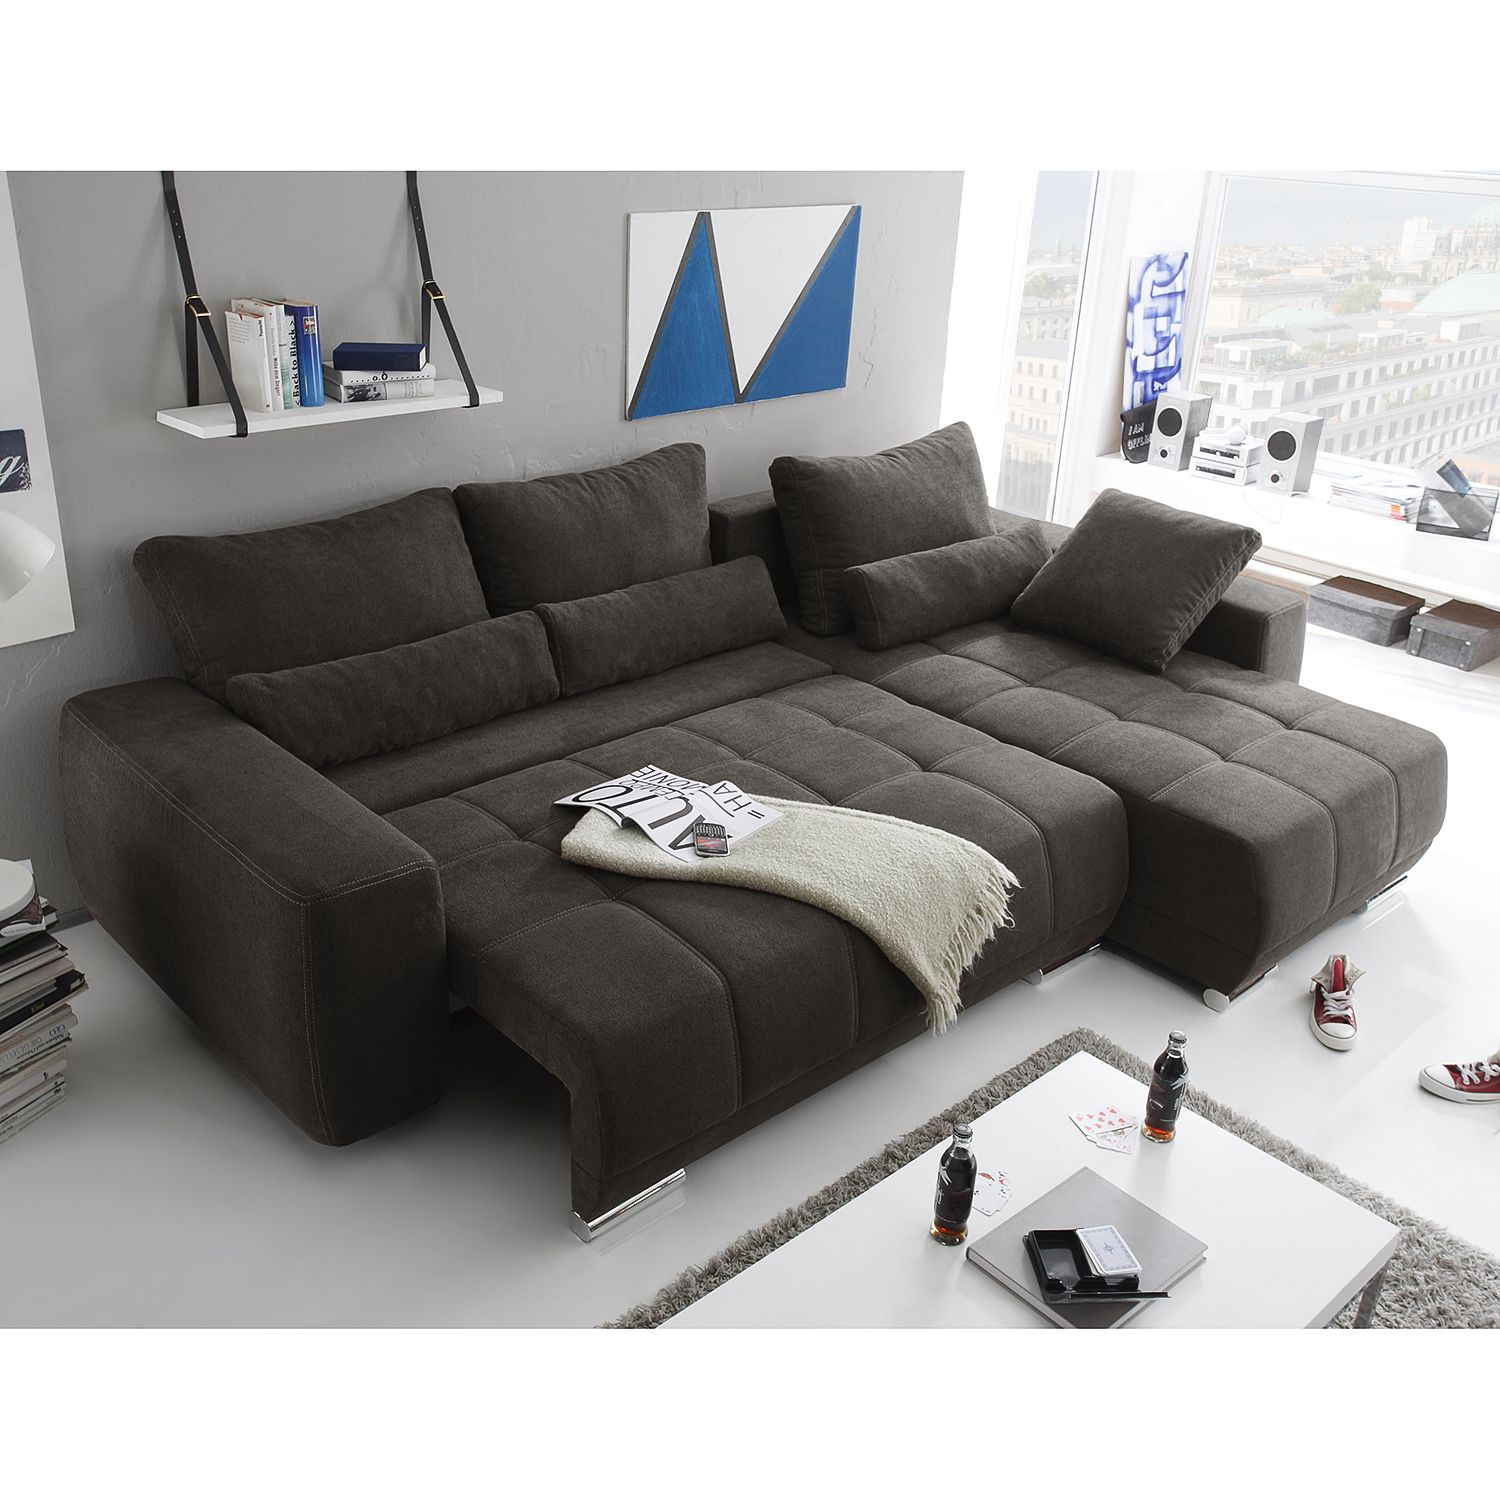 home24 Ecksofa Galilea